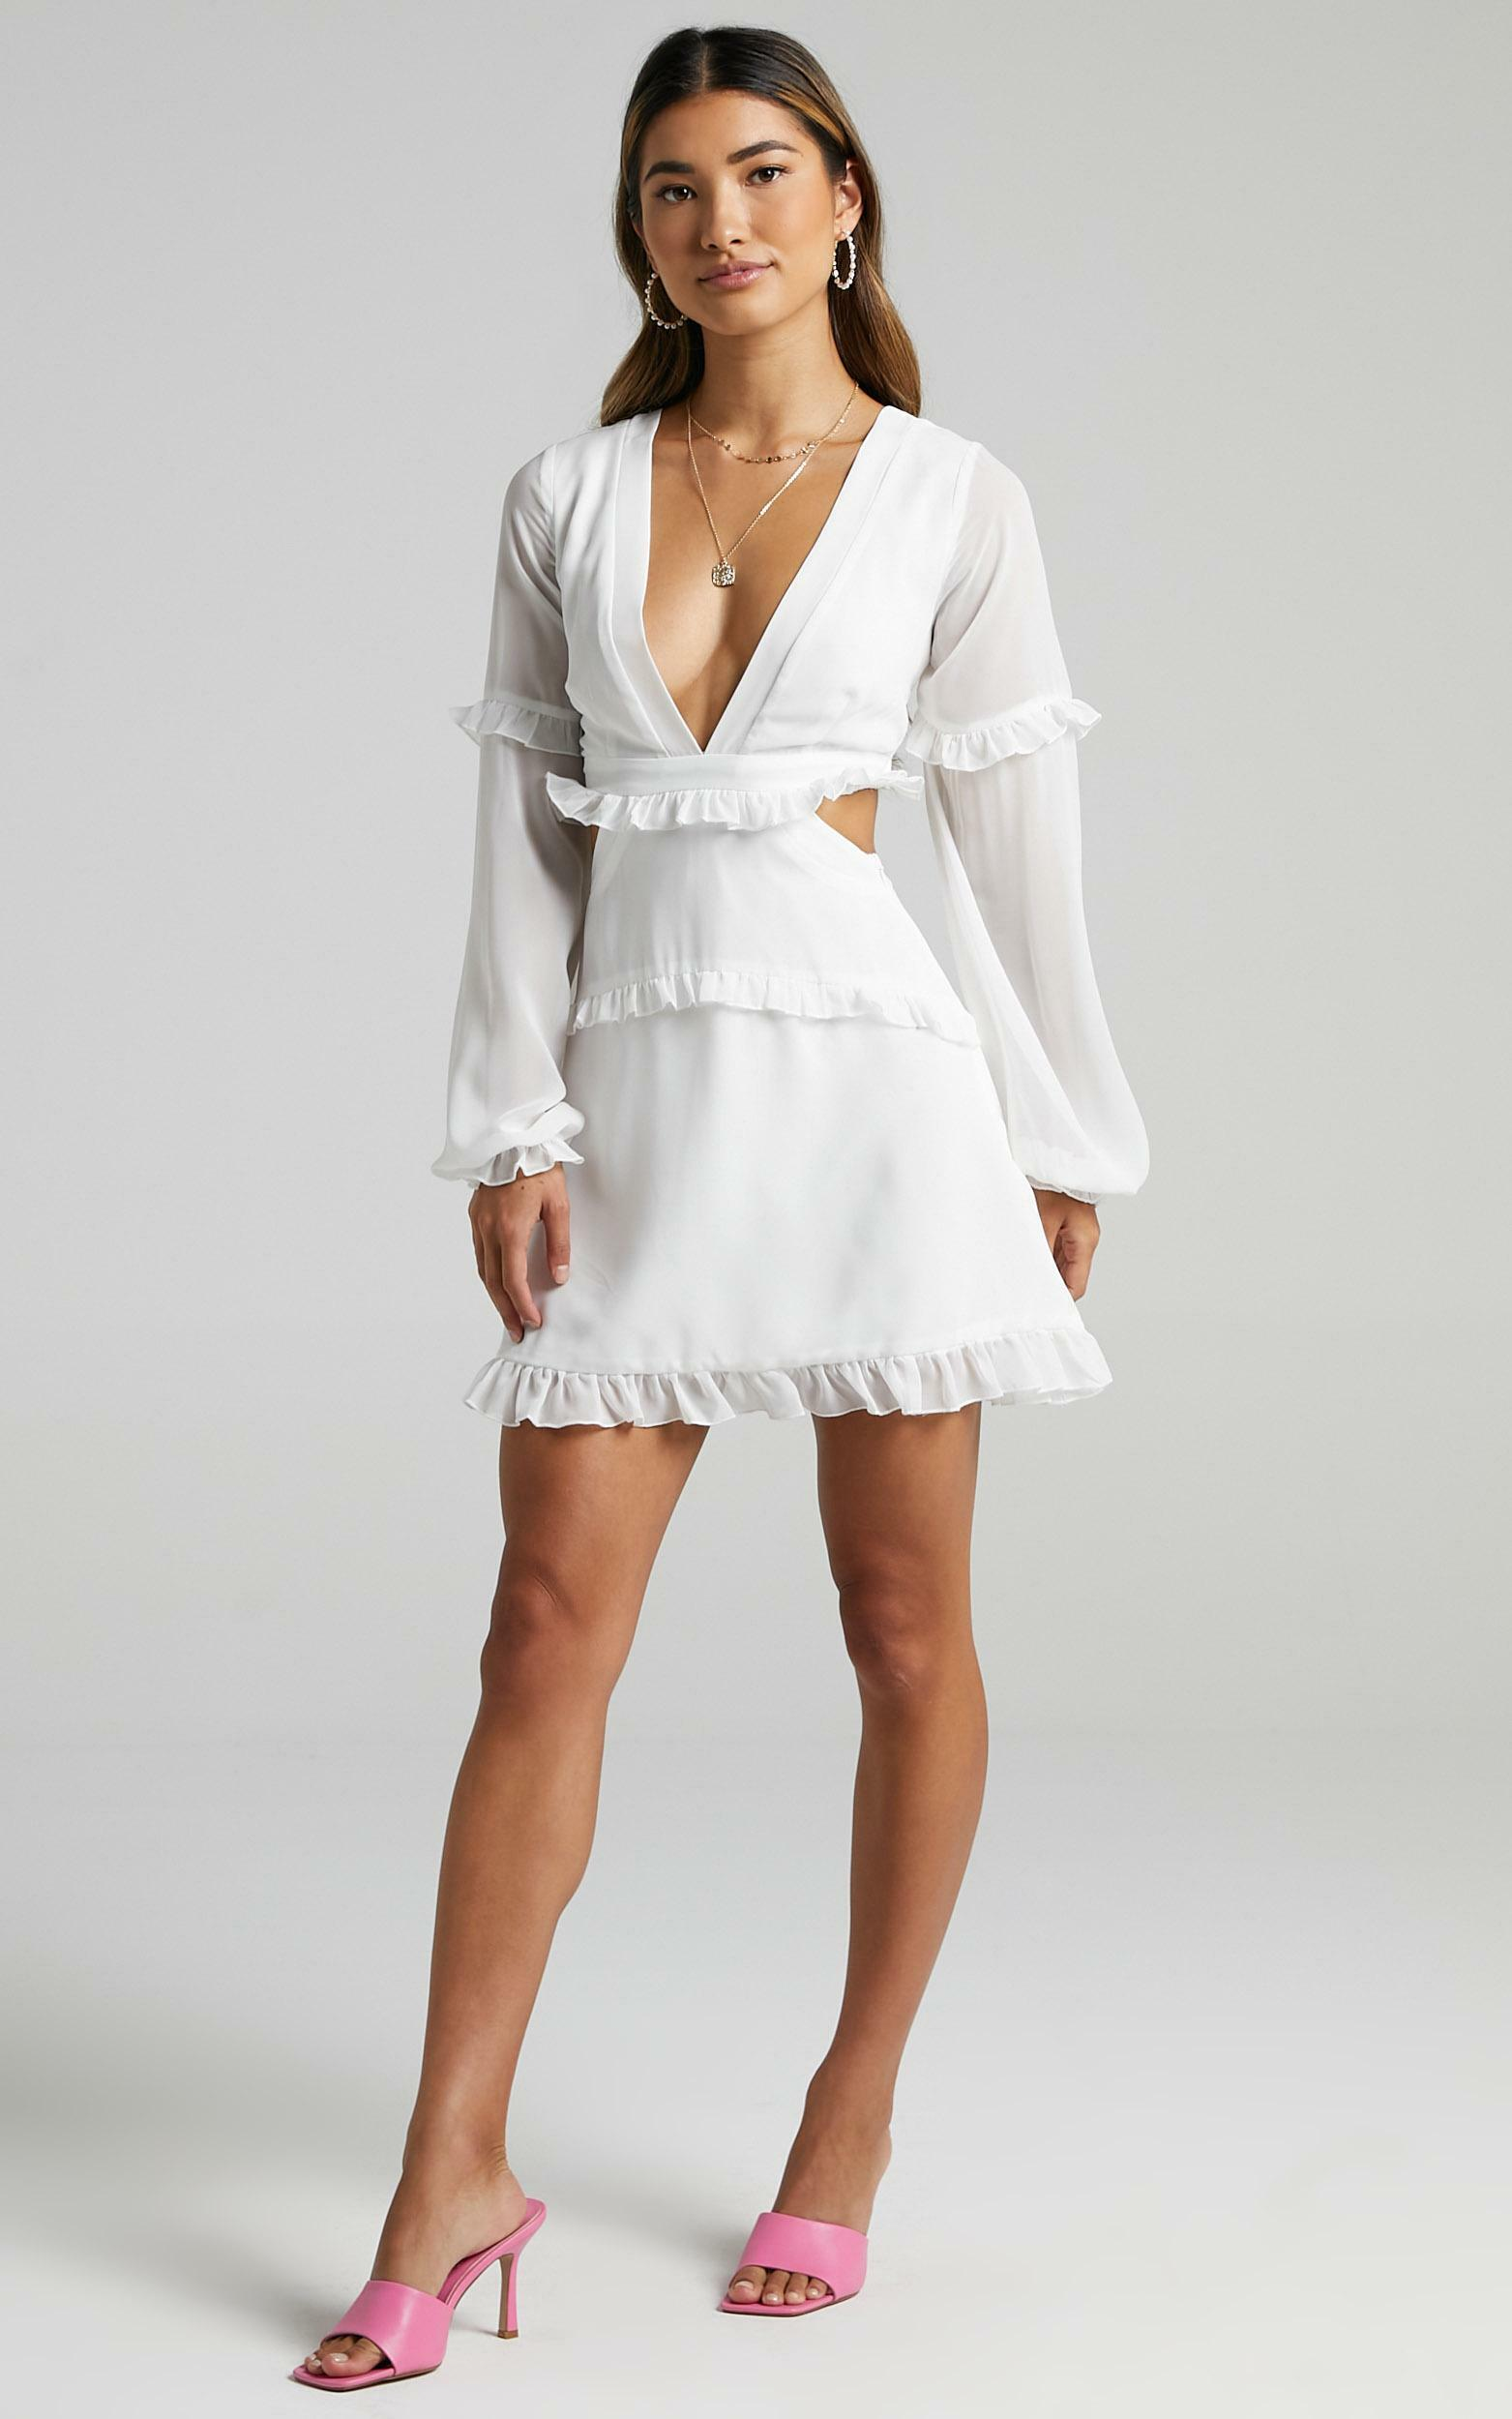 Caipirosca Dress in White - 6 (XS), White, hi-res image number null